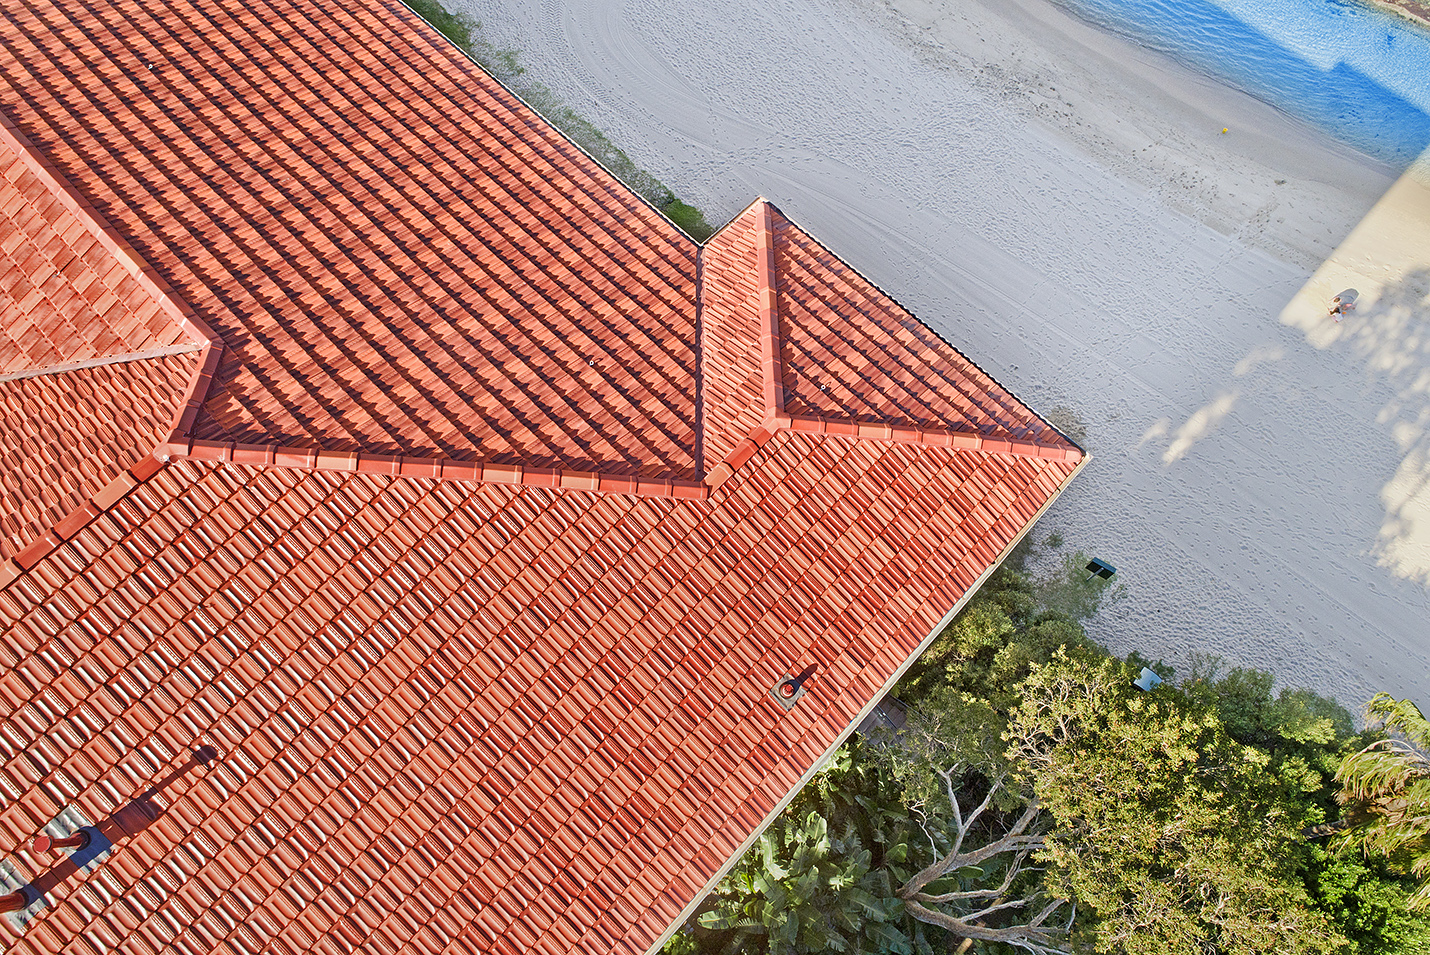 United Roof Tiling